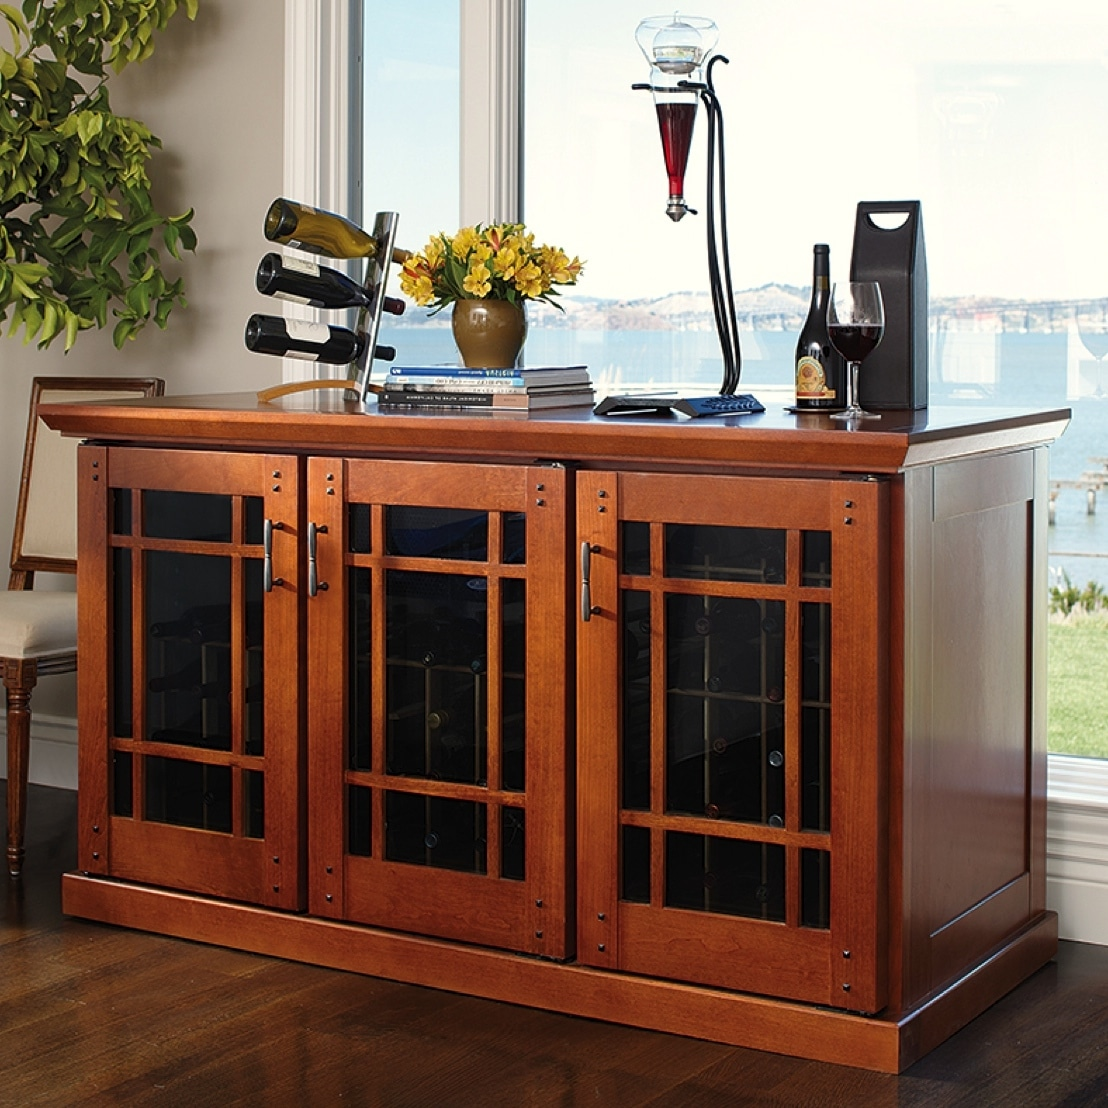 Click here to see more mission/Carolina styled styled wine cabinets